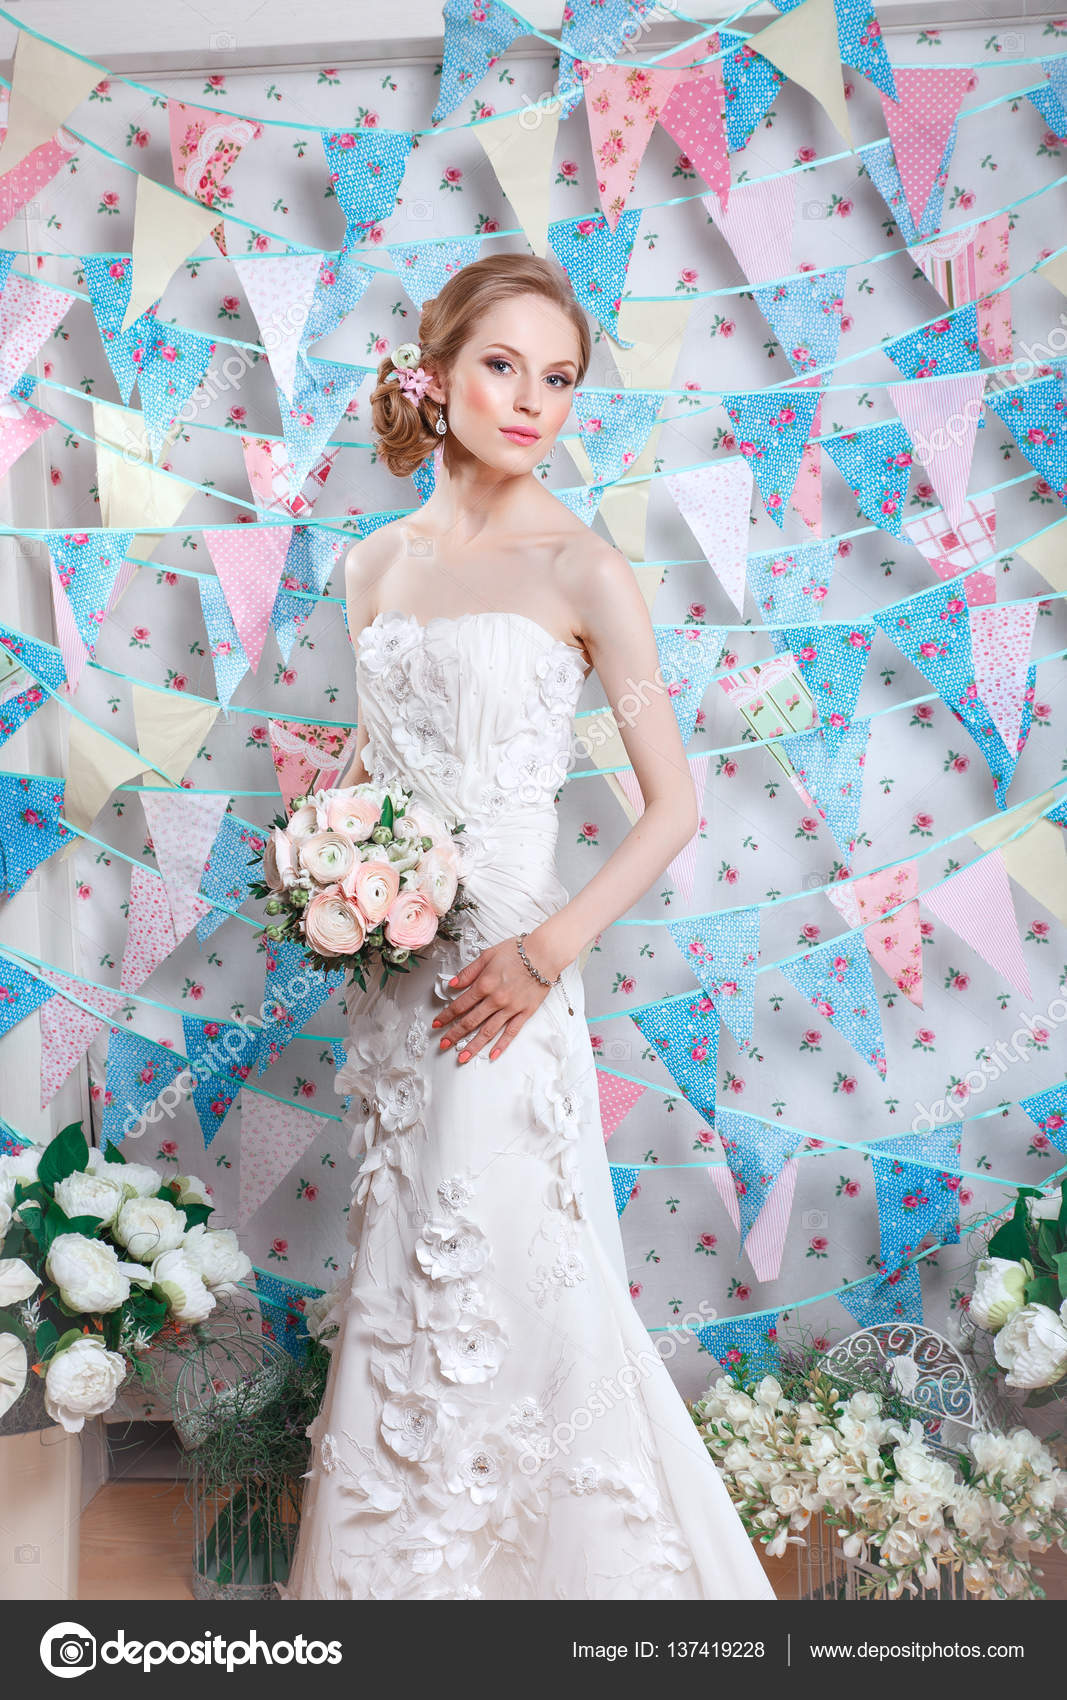 49c842ad941e Young fashion model with perfect skin and make up, flowers in hair.  Beautiful woman with makeup and hairstyle in bedroom.Happy Bride waiting  groom.